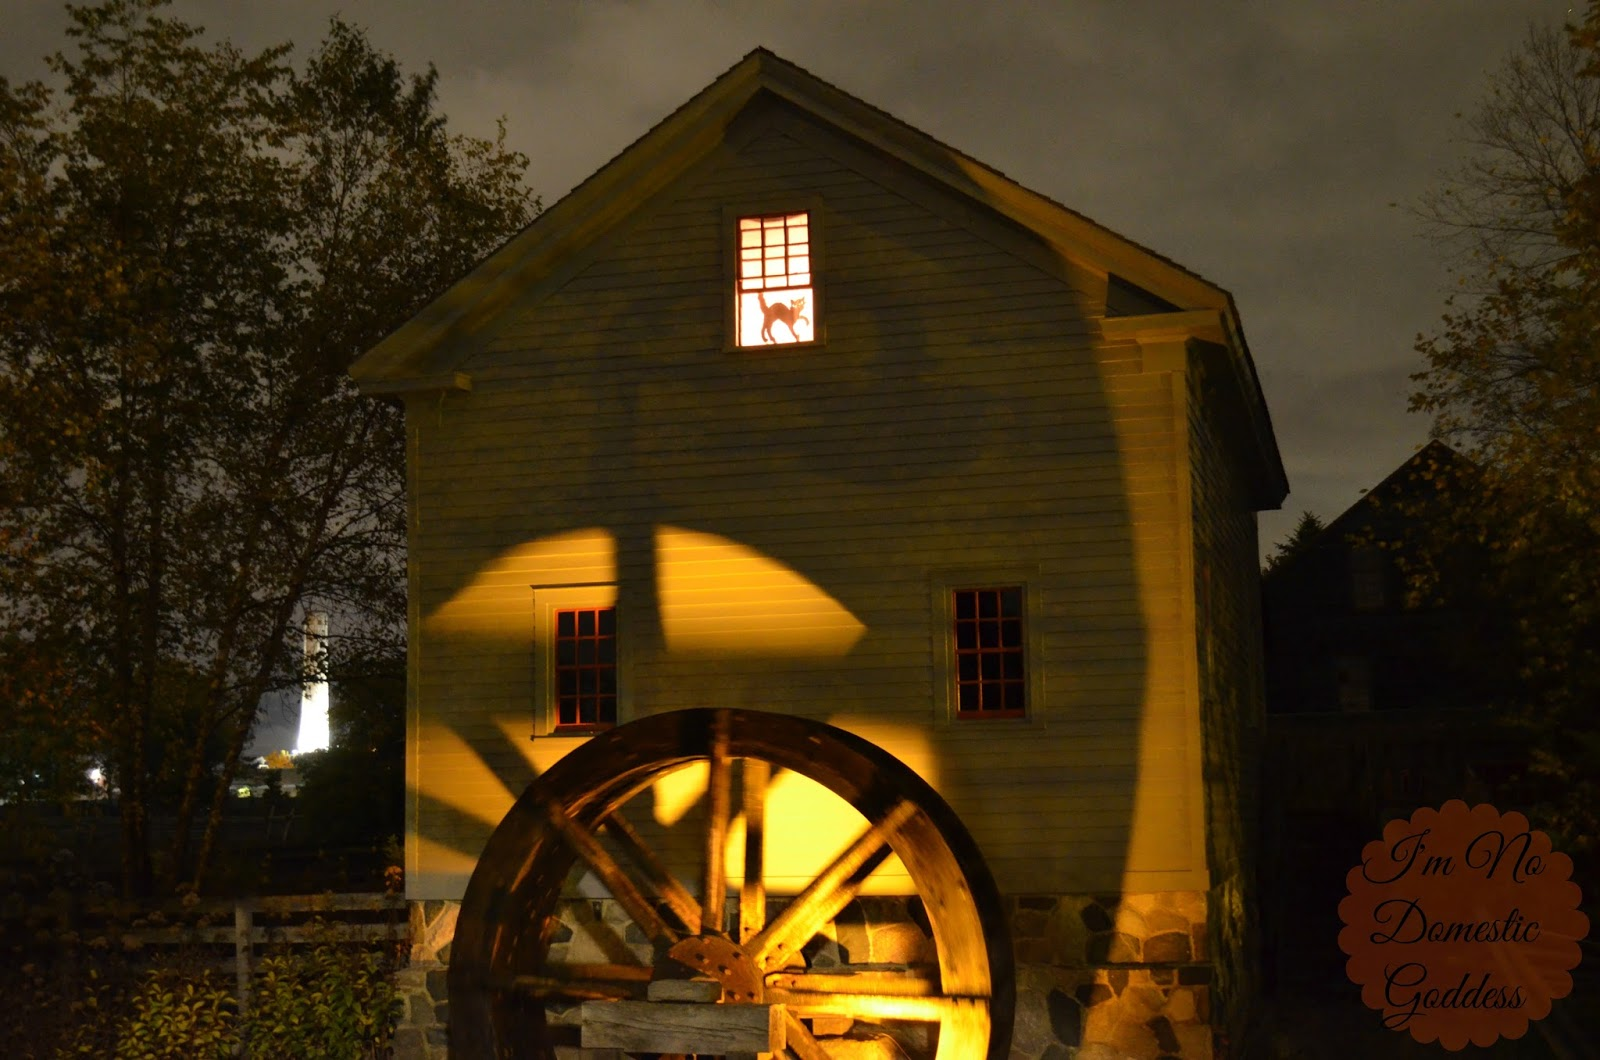 Our Visit To Hallowe'en in Greenfield Village ~ I'm No Domestic ...